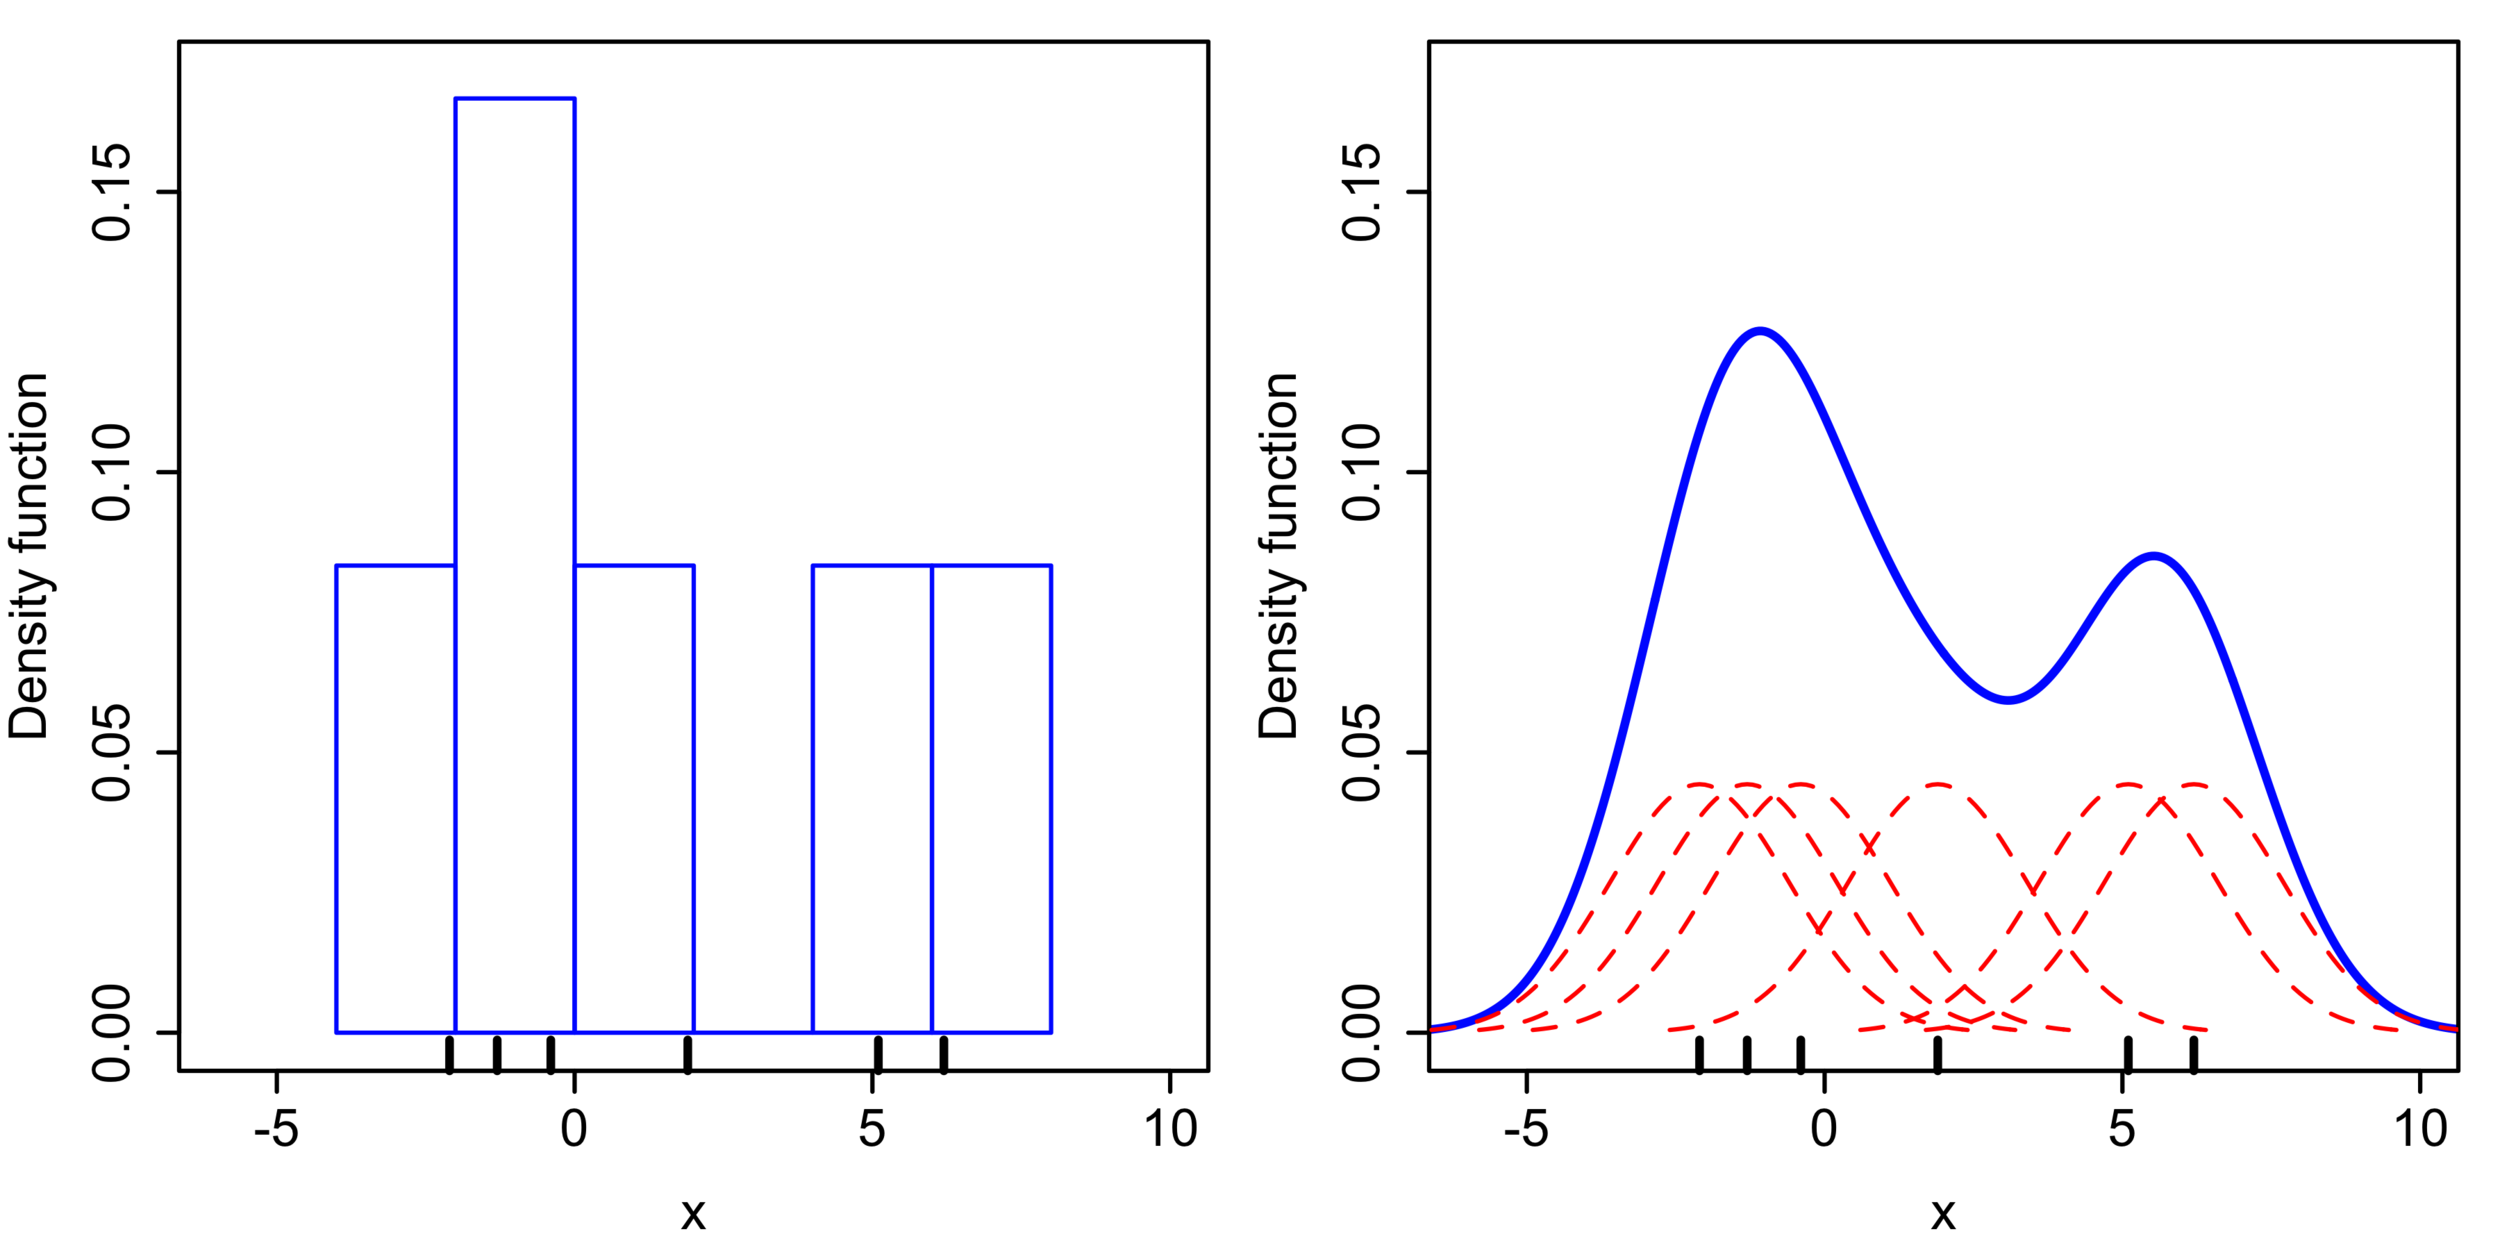 """Comparison of the histogram (left) and kernel density estimate (right) constructed using the same data. The 6 individual kernels are the red dashed curves, the kernel density estimate the blue curves. The data points are the rug plot on the horizontal axis.""  https://en.wikipedia.org/wiki/Kernel_density_estimation"